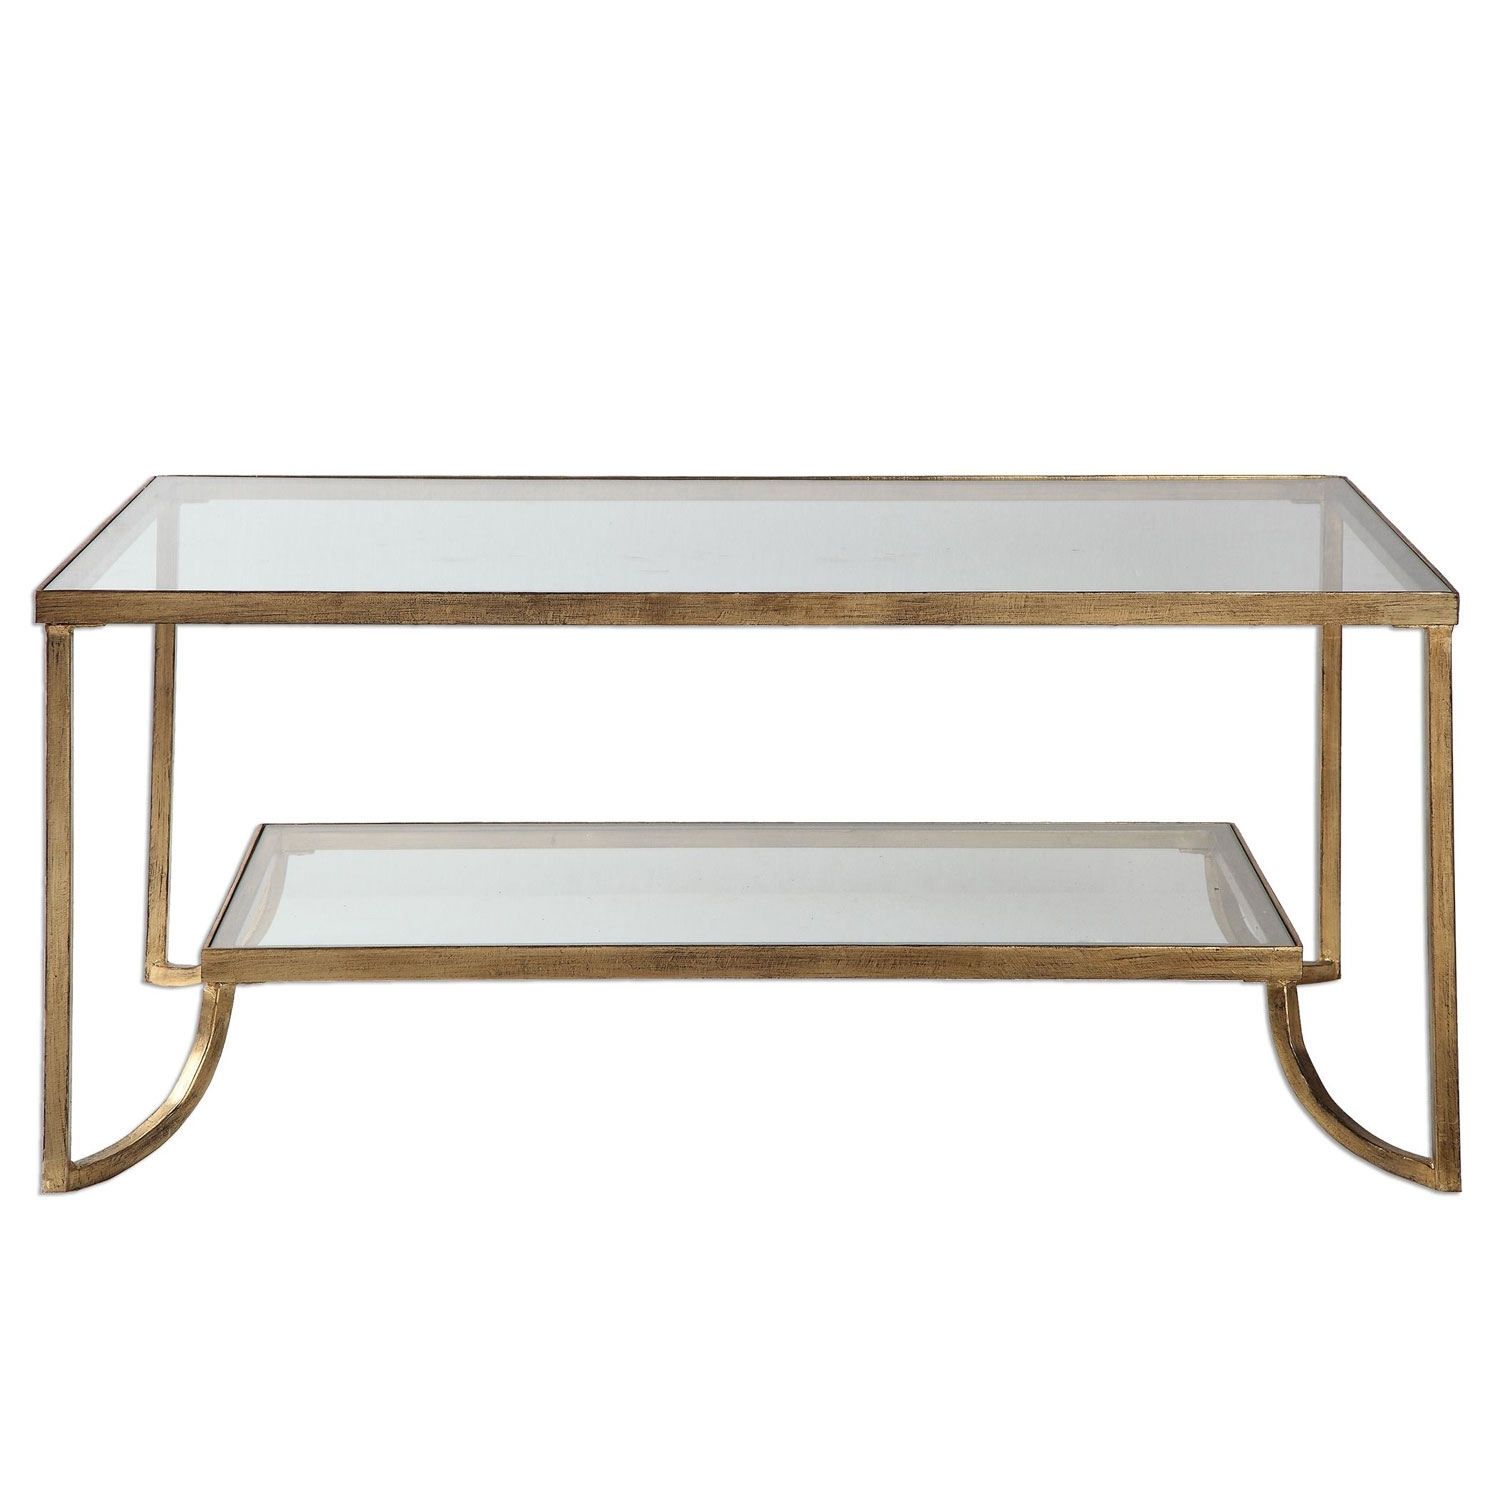 Uttermost Katina Gold Leaf Coffee Table 24540 | Bellacor pertaining to Gold Leaf Collection Coffee Tables (Image 30 of 30)